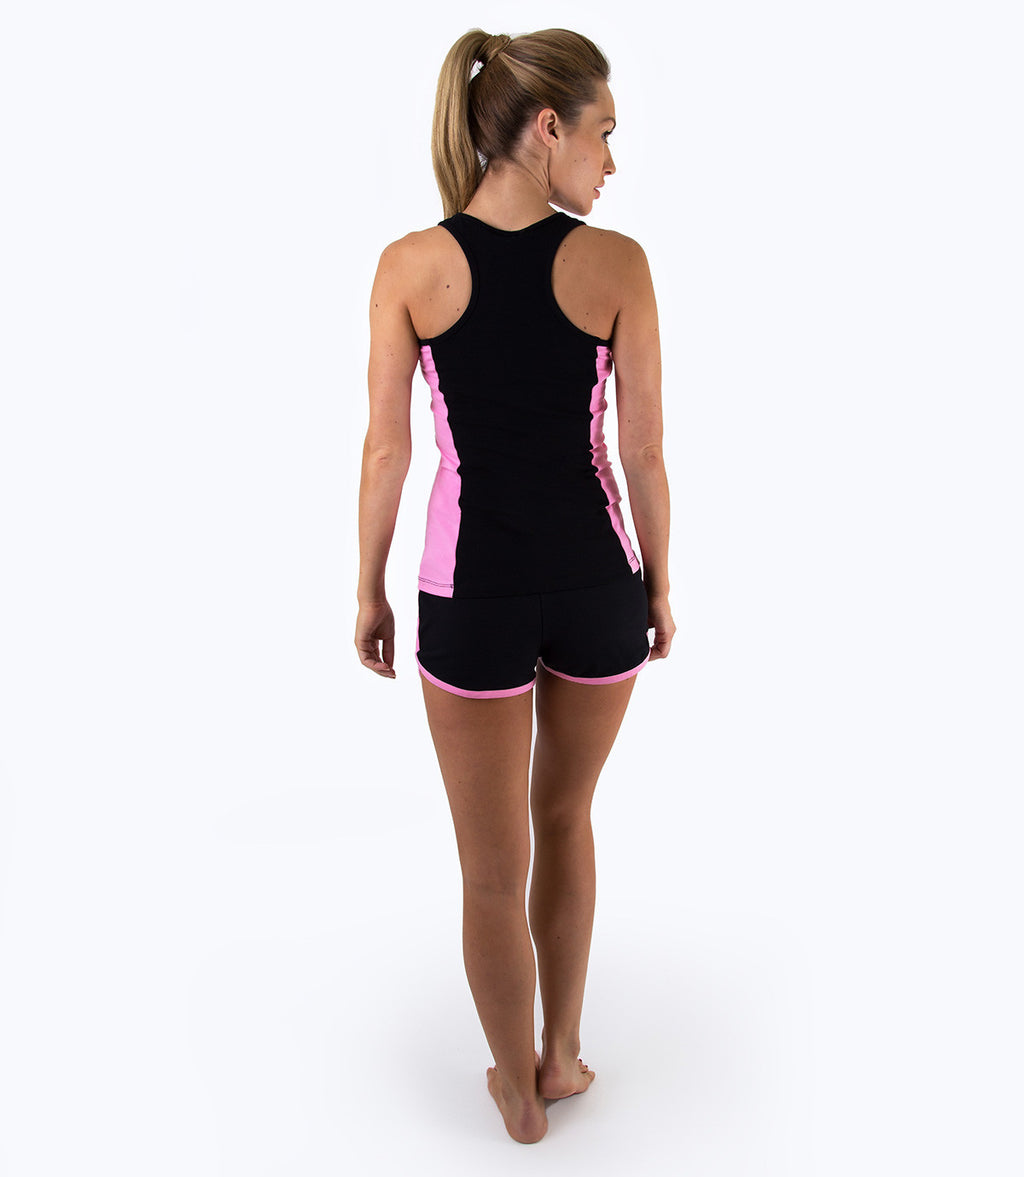 LADIES RUNNING SHORTS - BLACK/PINK